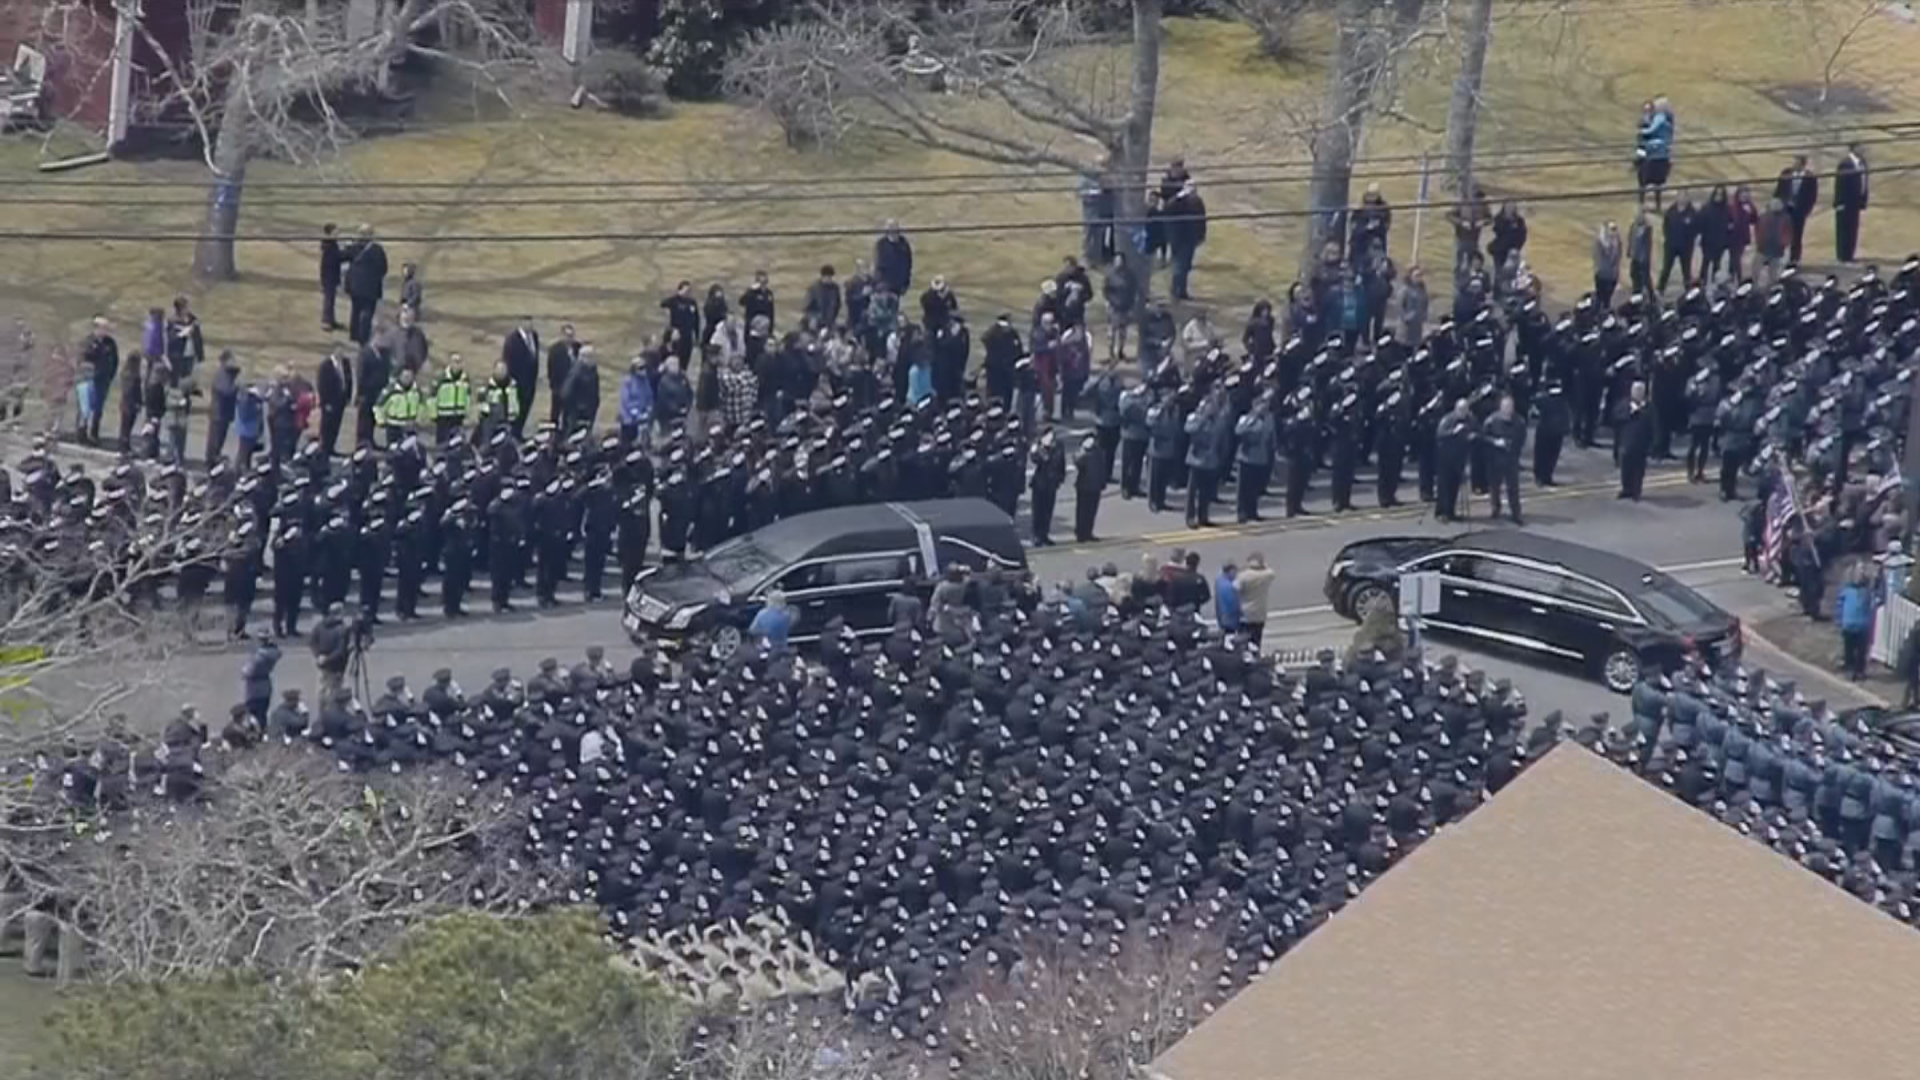 Thousands of officers salute sgt sean gannon one last - Does fire department fill swimming pools ...